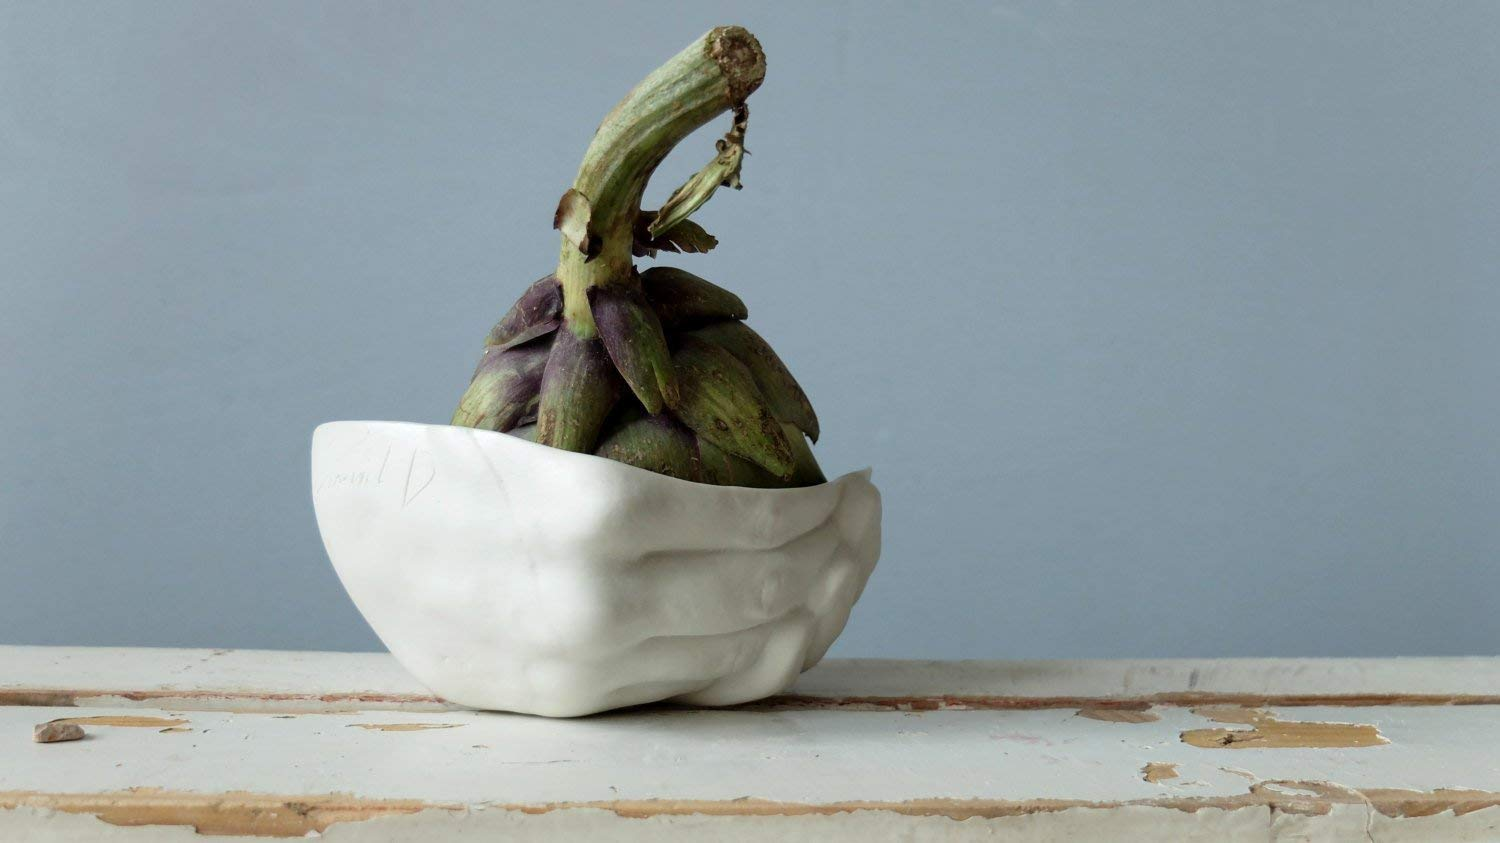 White porcelain hand sculpture small bowl for fruit, candy, dessert and a cute gift by SinD studio